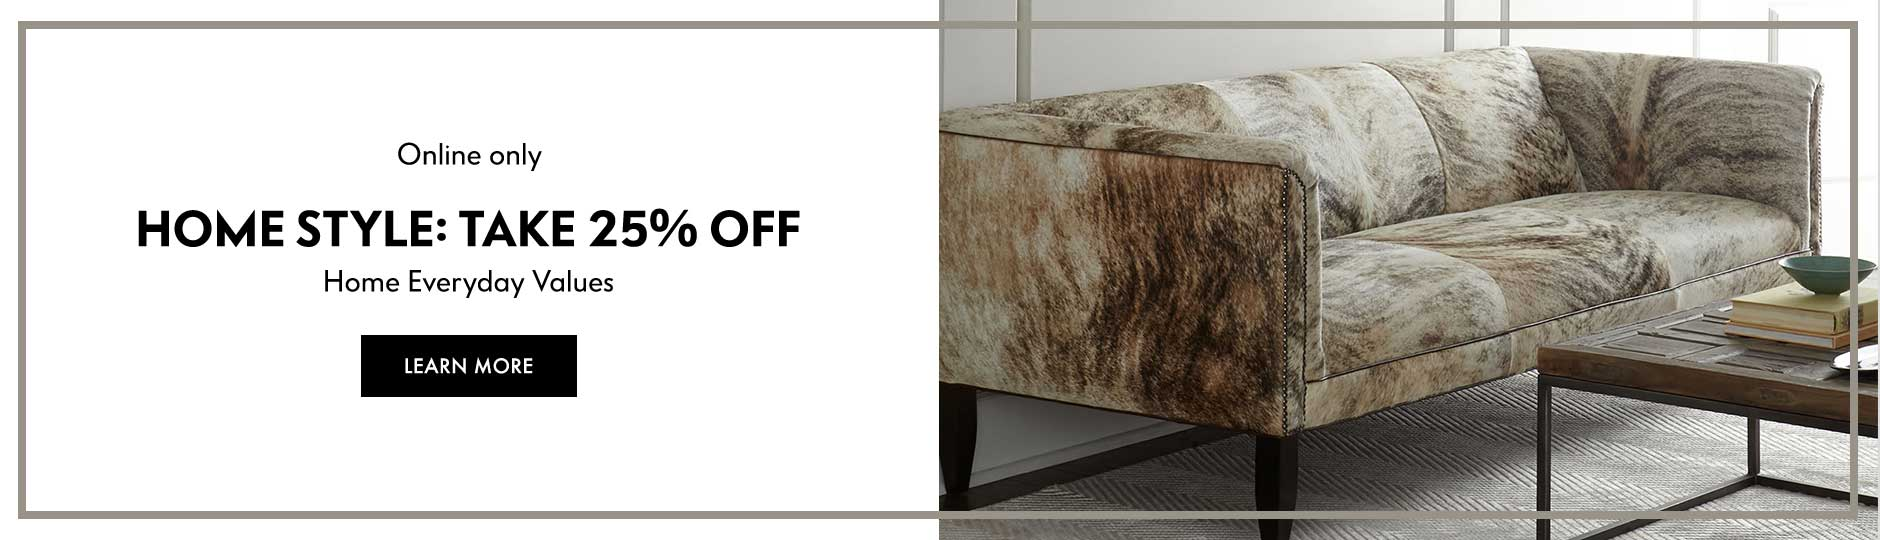 Online only: Home Style - Take 25% off Home Everyday Values